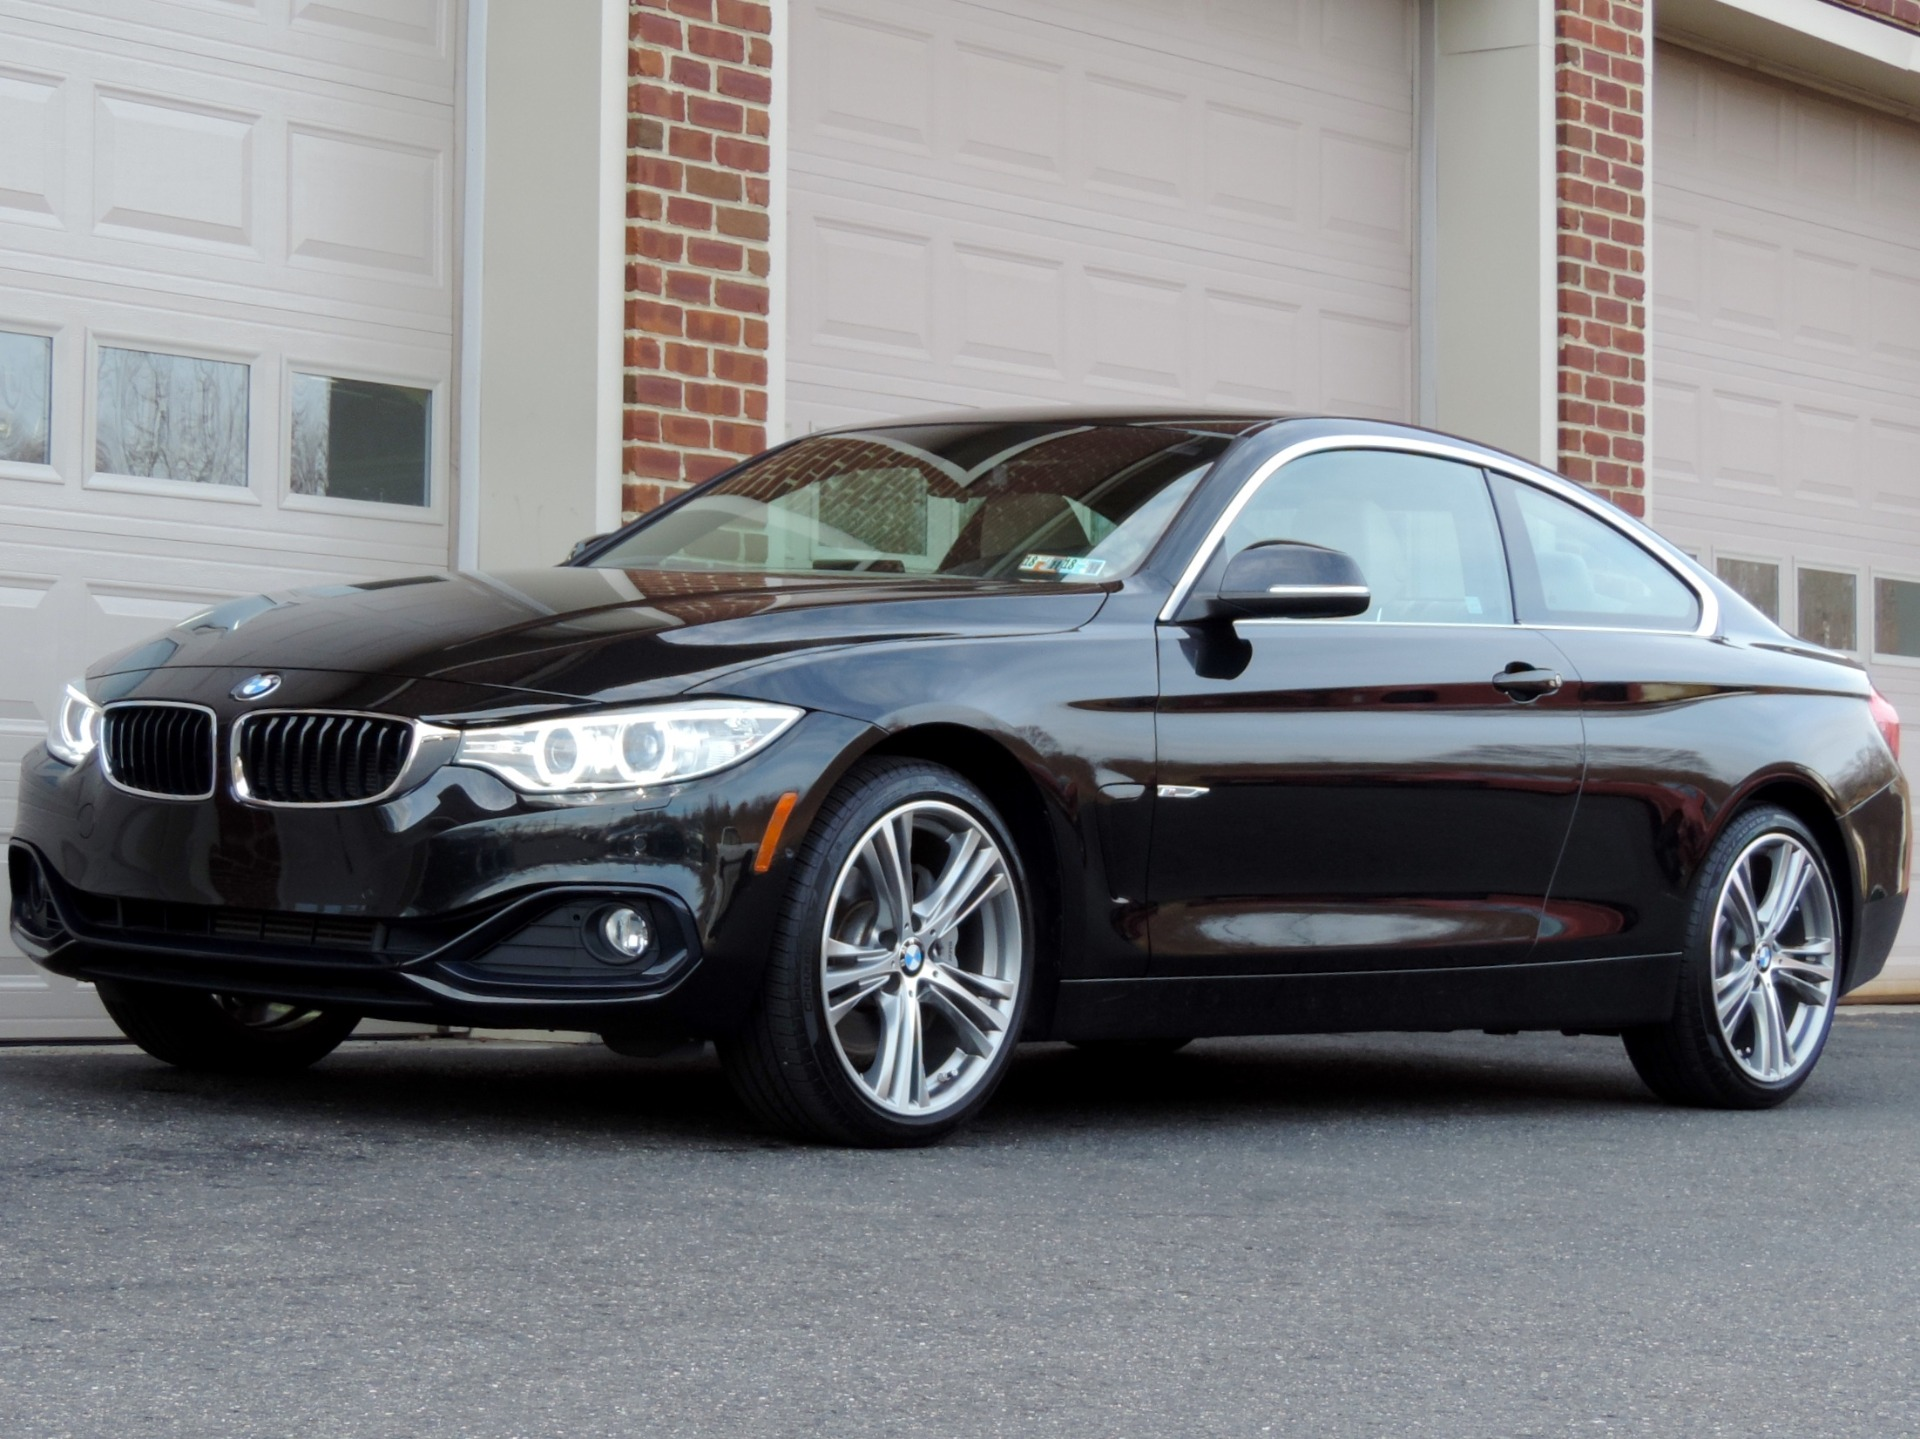 drummondville sale used amazing bmw details at condition hyundai for